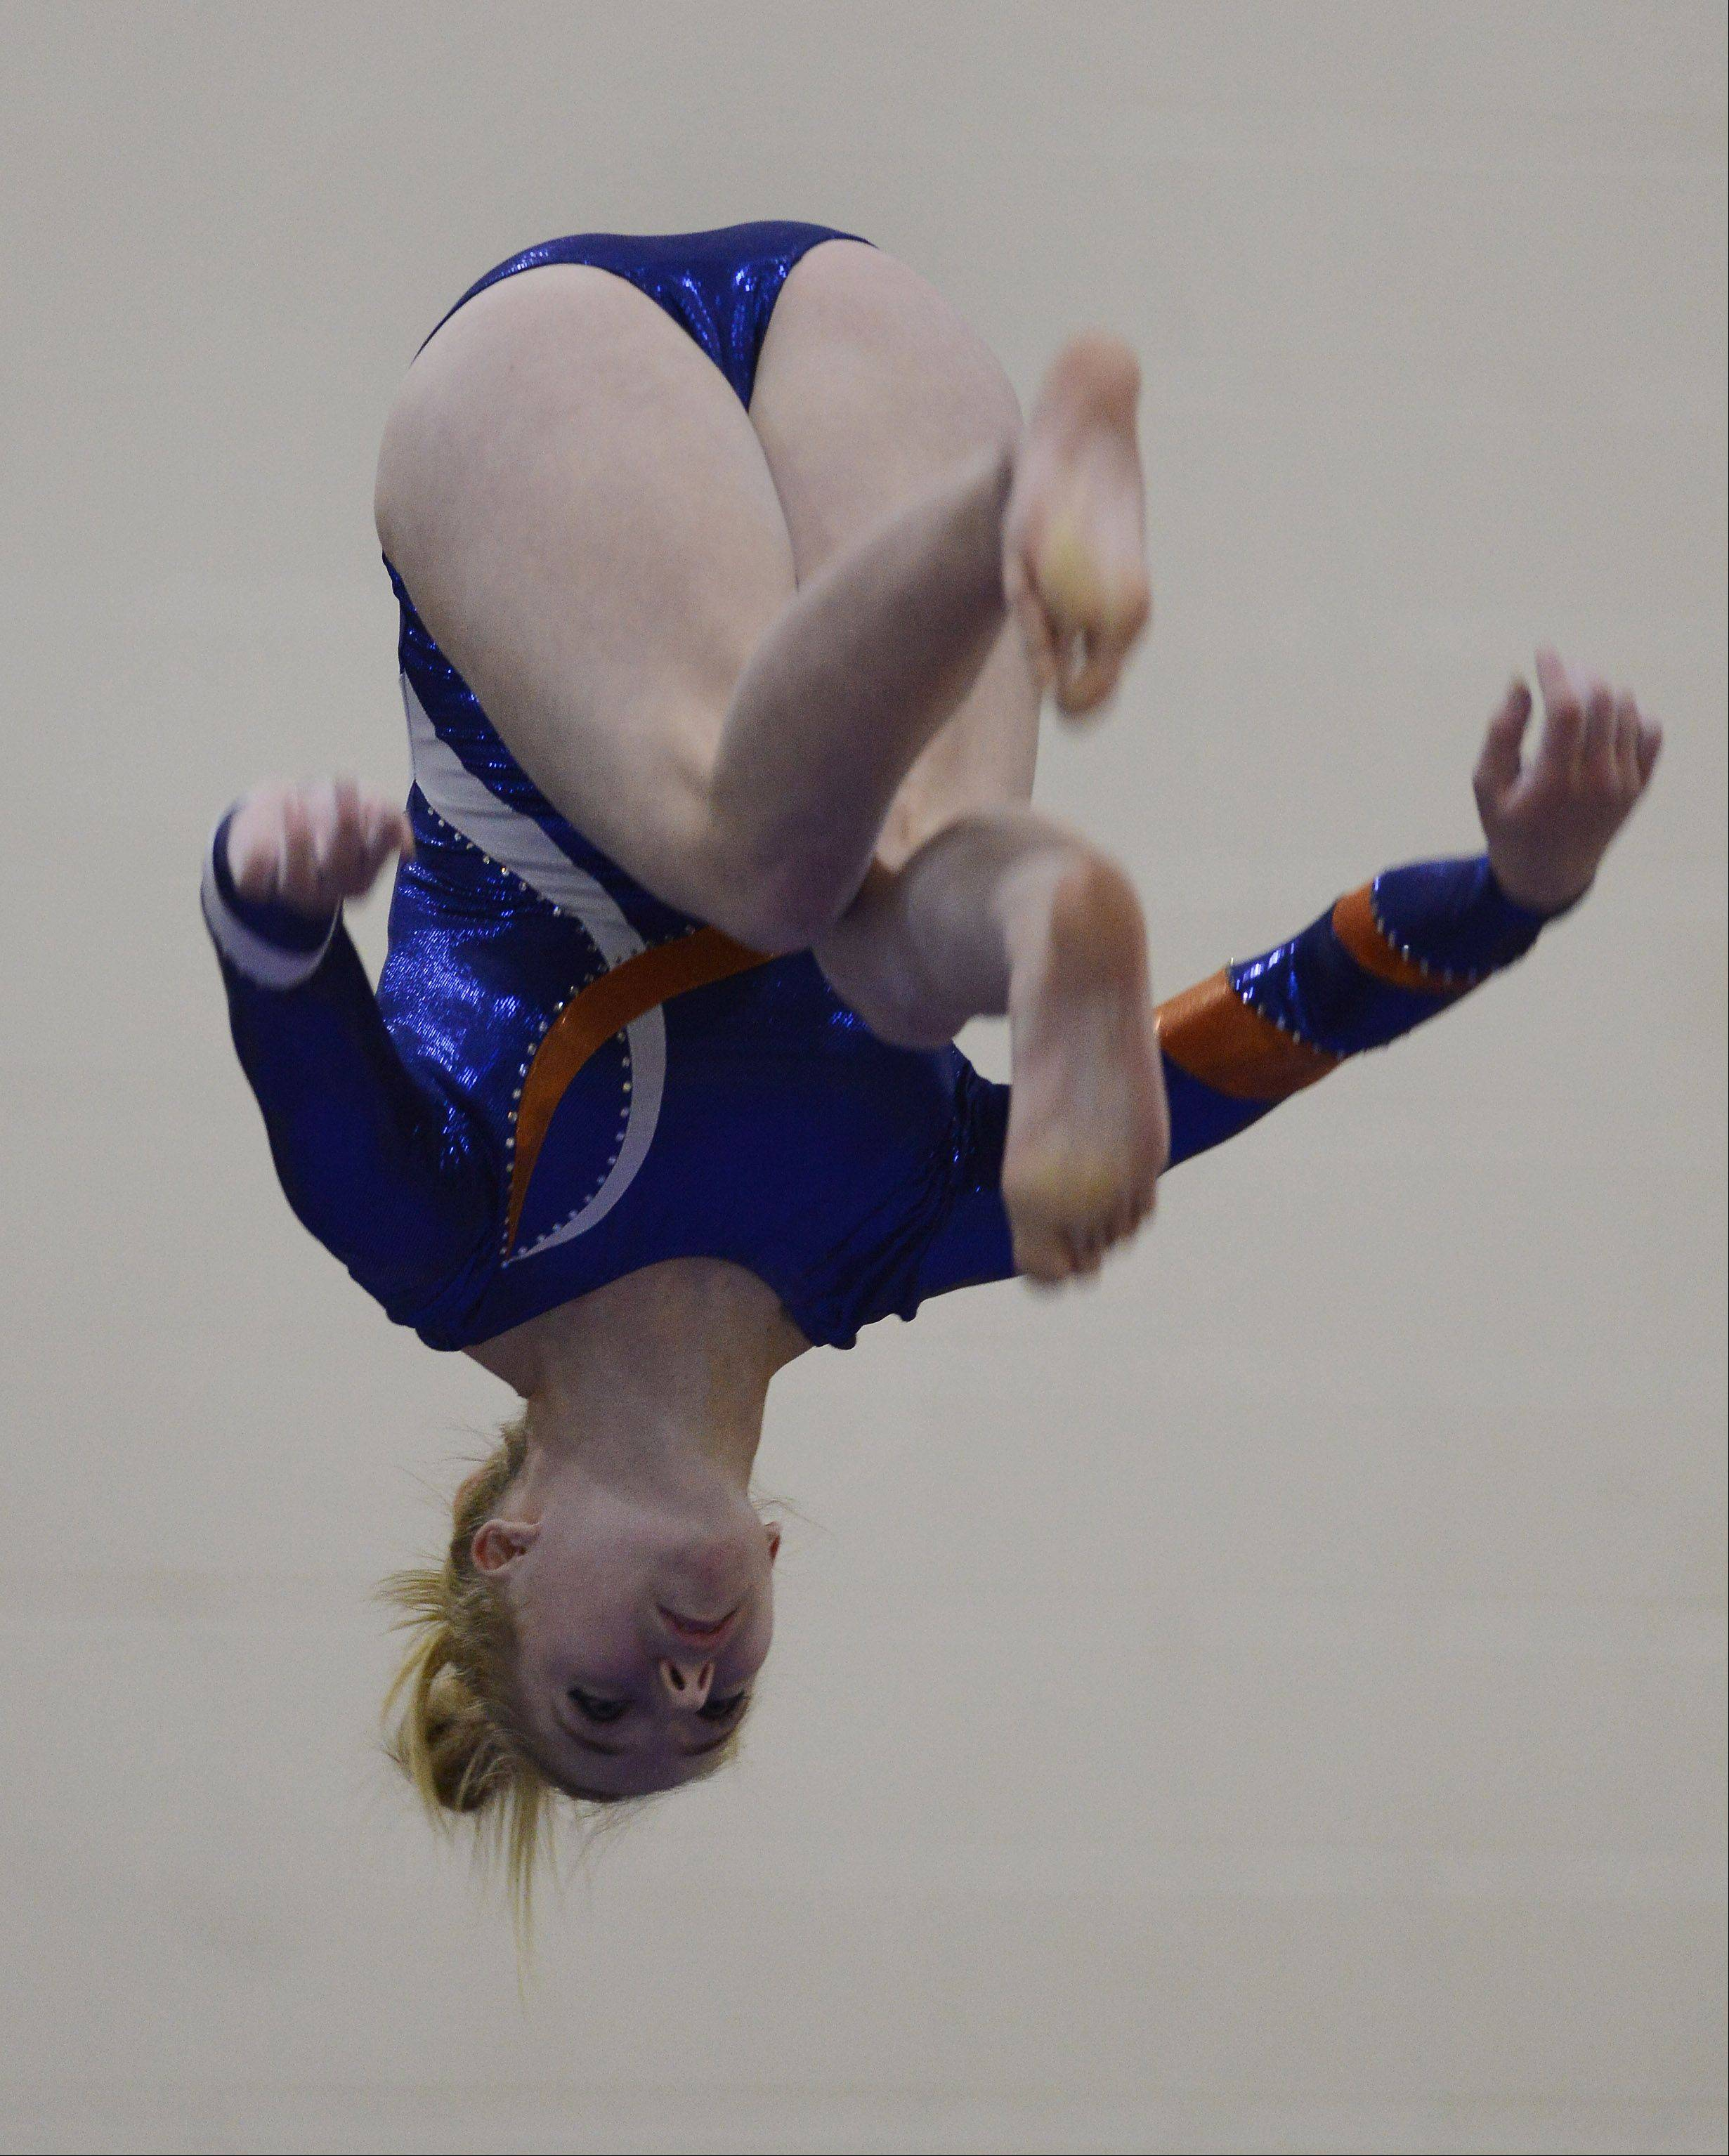 Buffalo Grove's Diandra Duenser competes on the balance beam during Wednesday's meet with Hersey and Fremd.